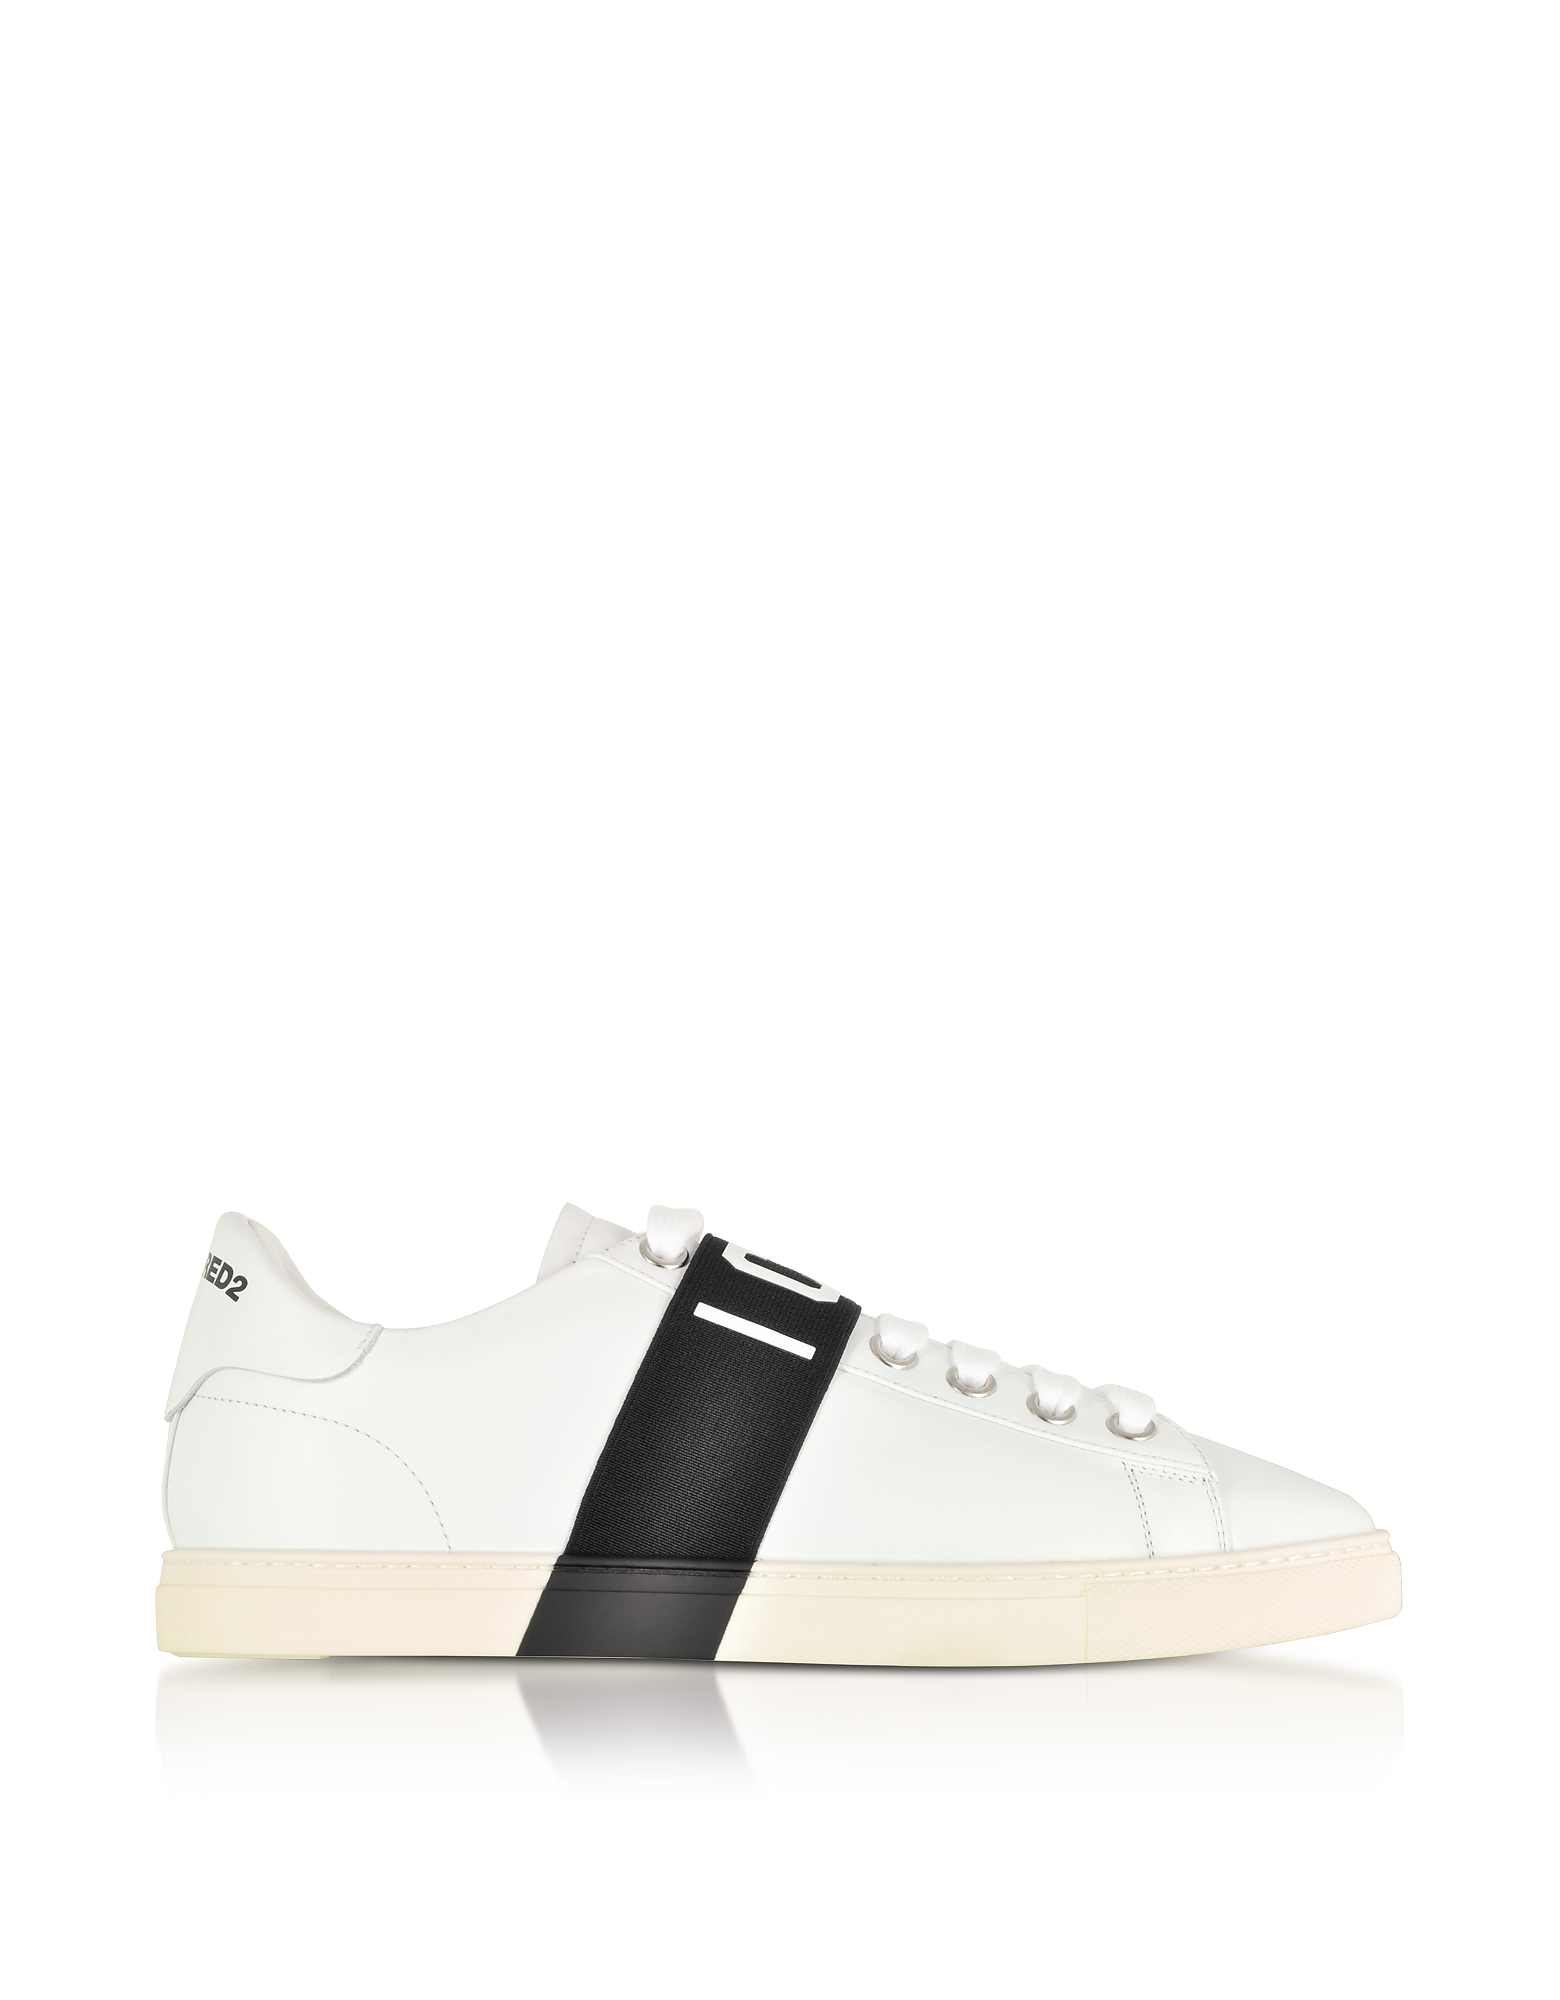 DSquared2 Shoes, White Leather Icon Men's Sneakers w/Black Band